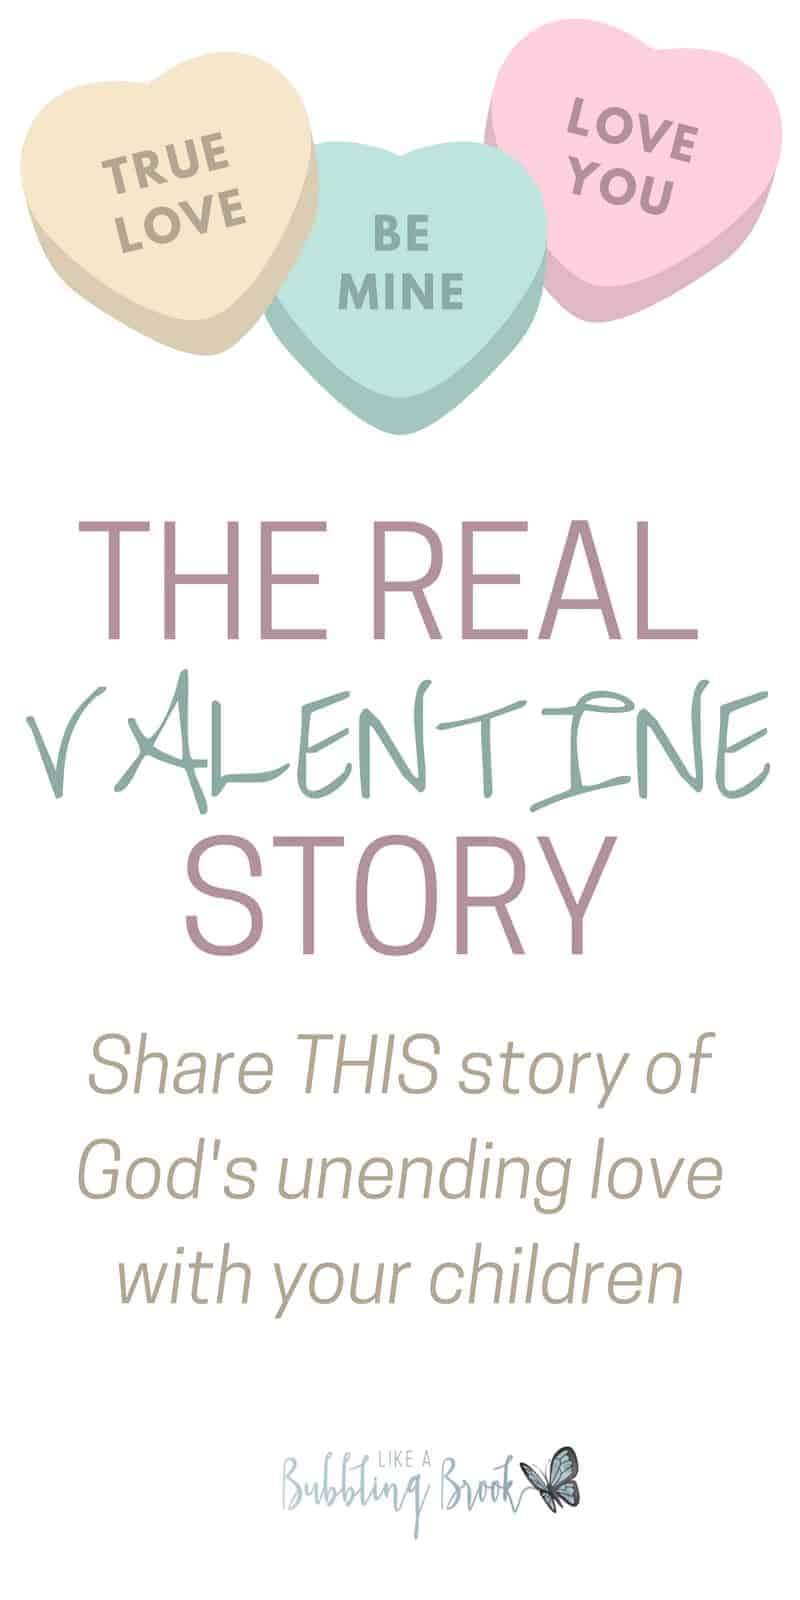 The REAL Valentine Story